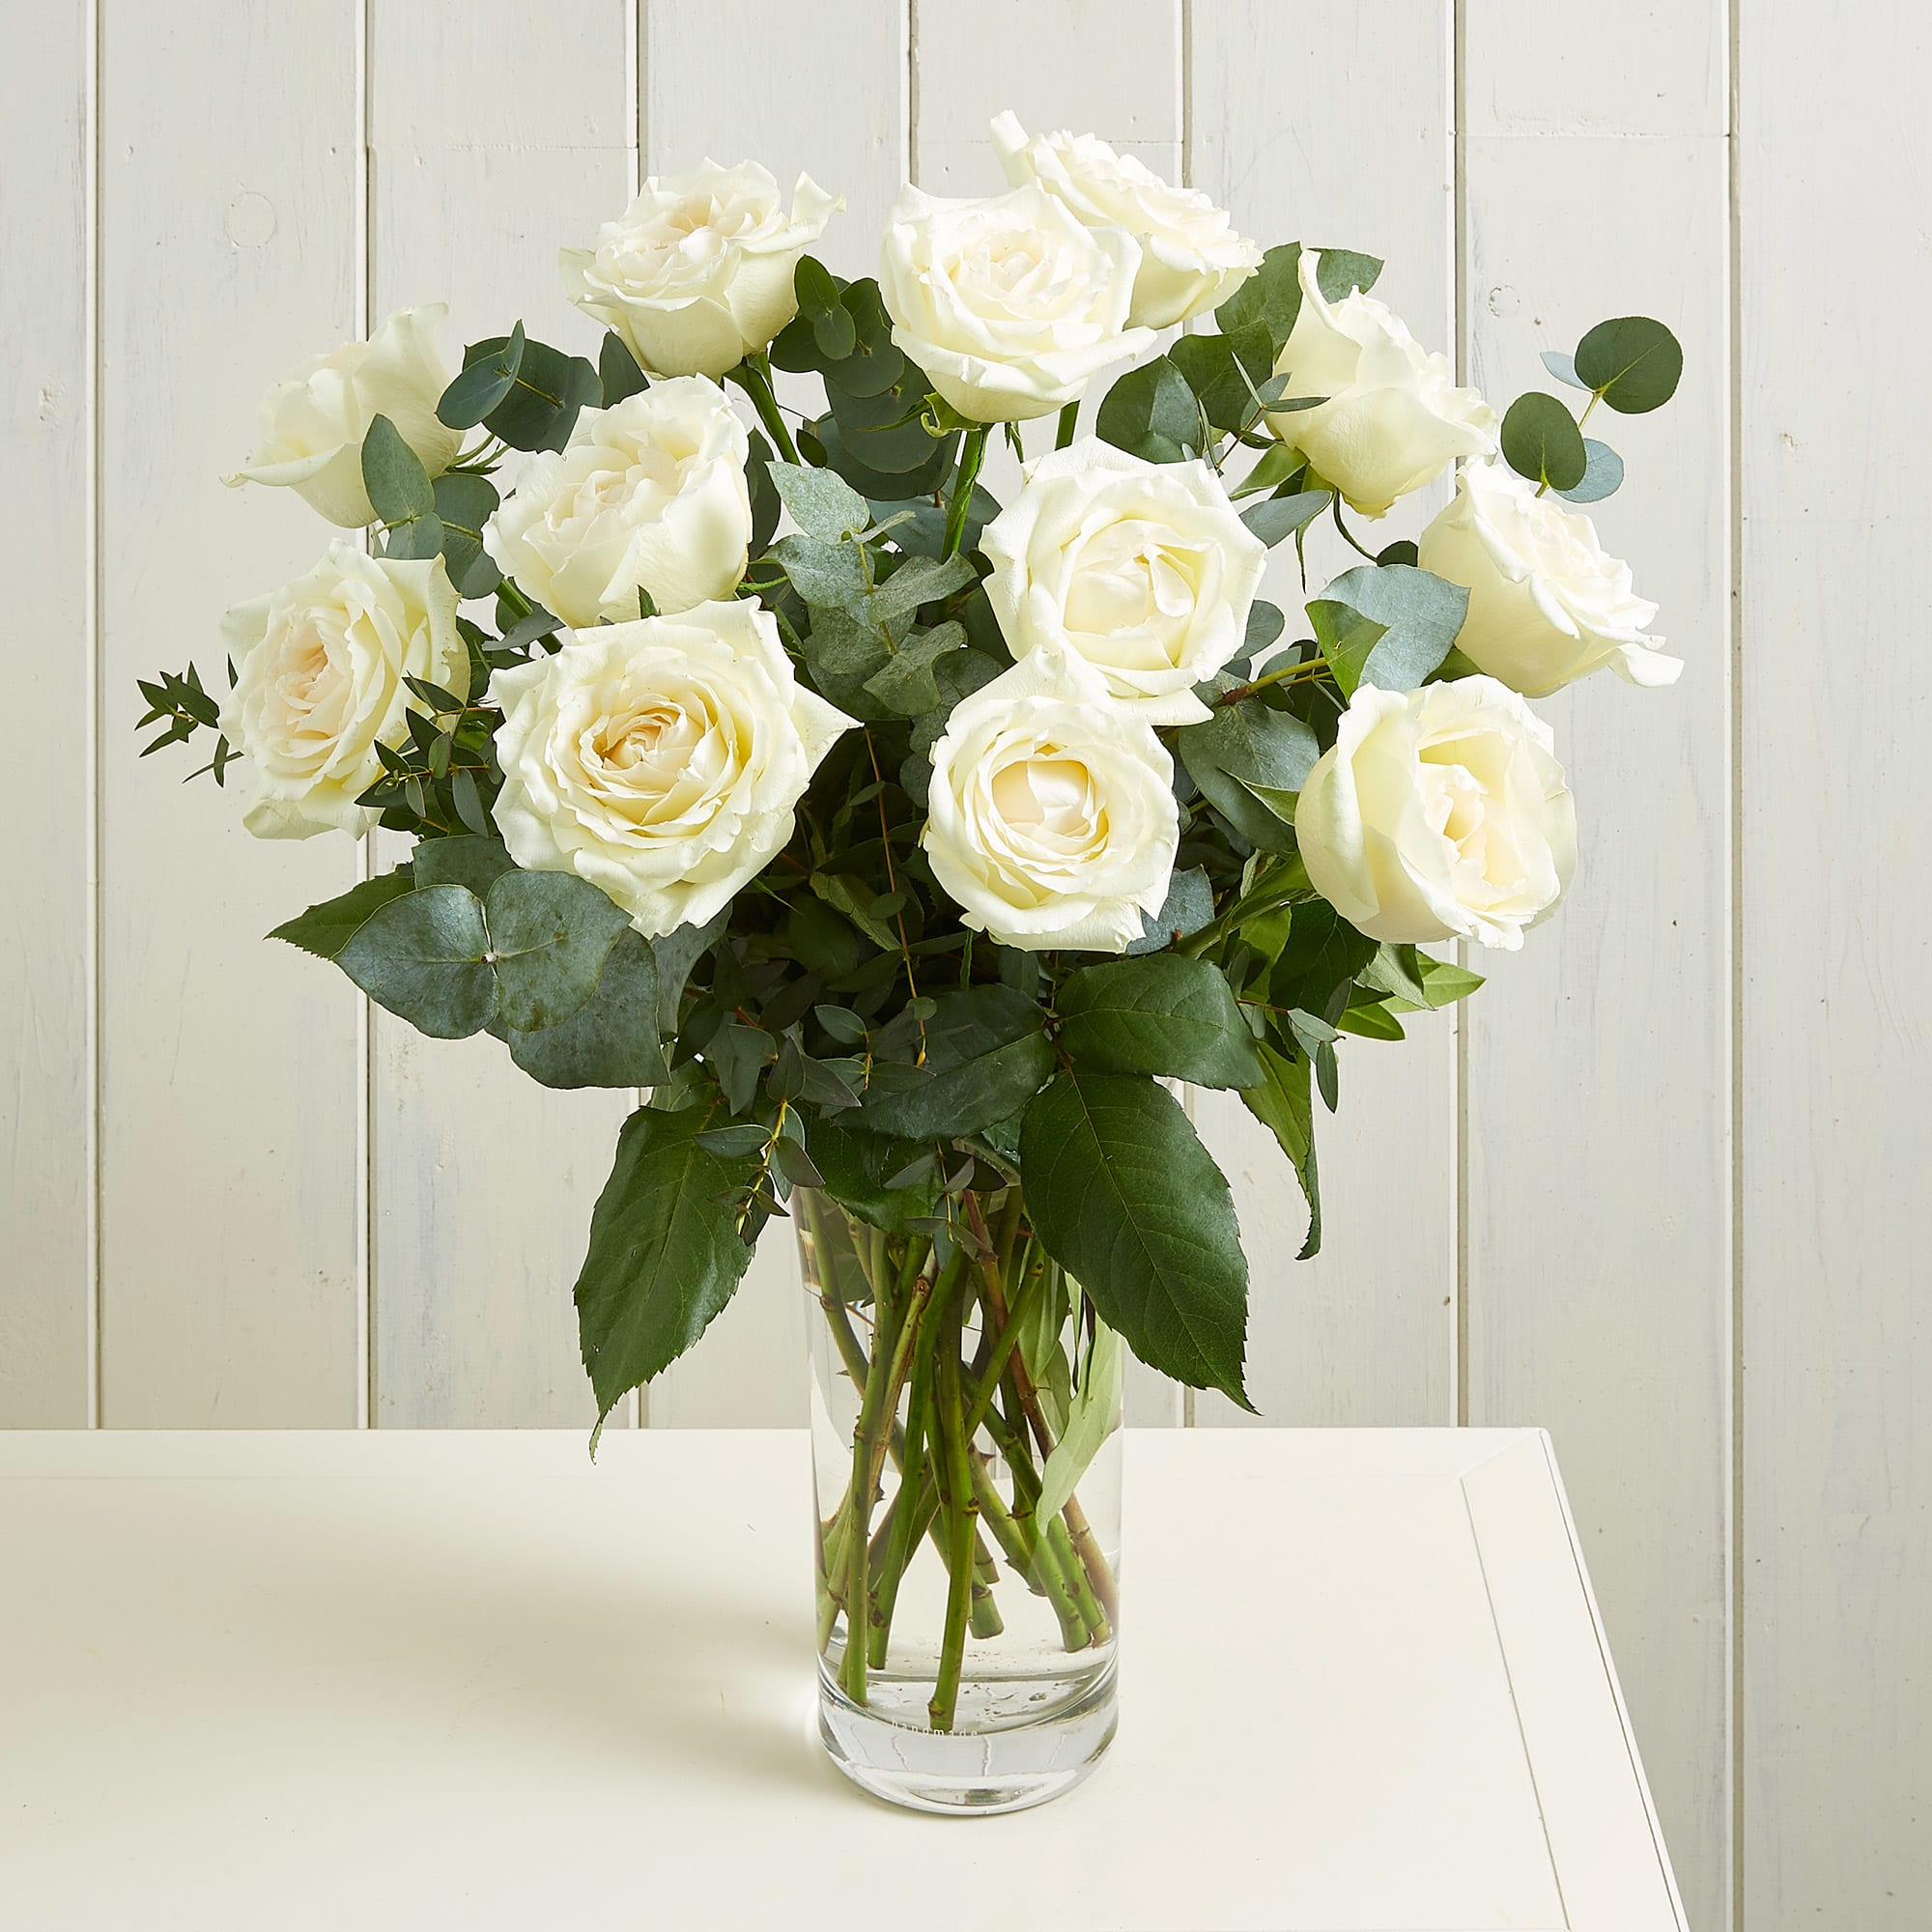 Roses for Golden Wedding Anniversary